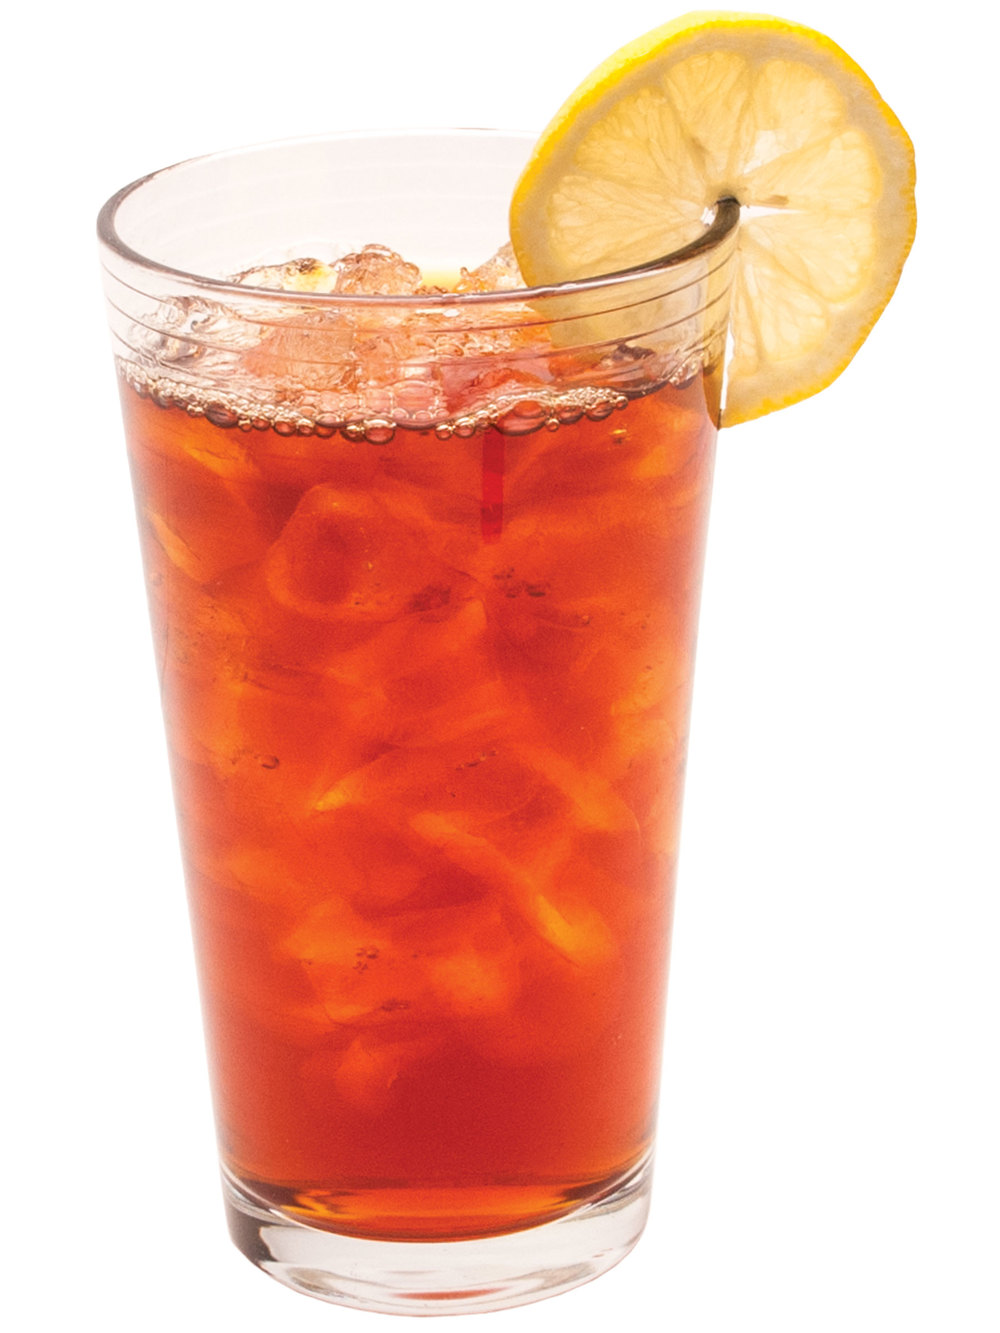 iced tea perplexities | WritersCafe.org | The Online Writing Community